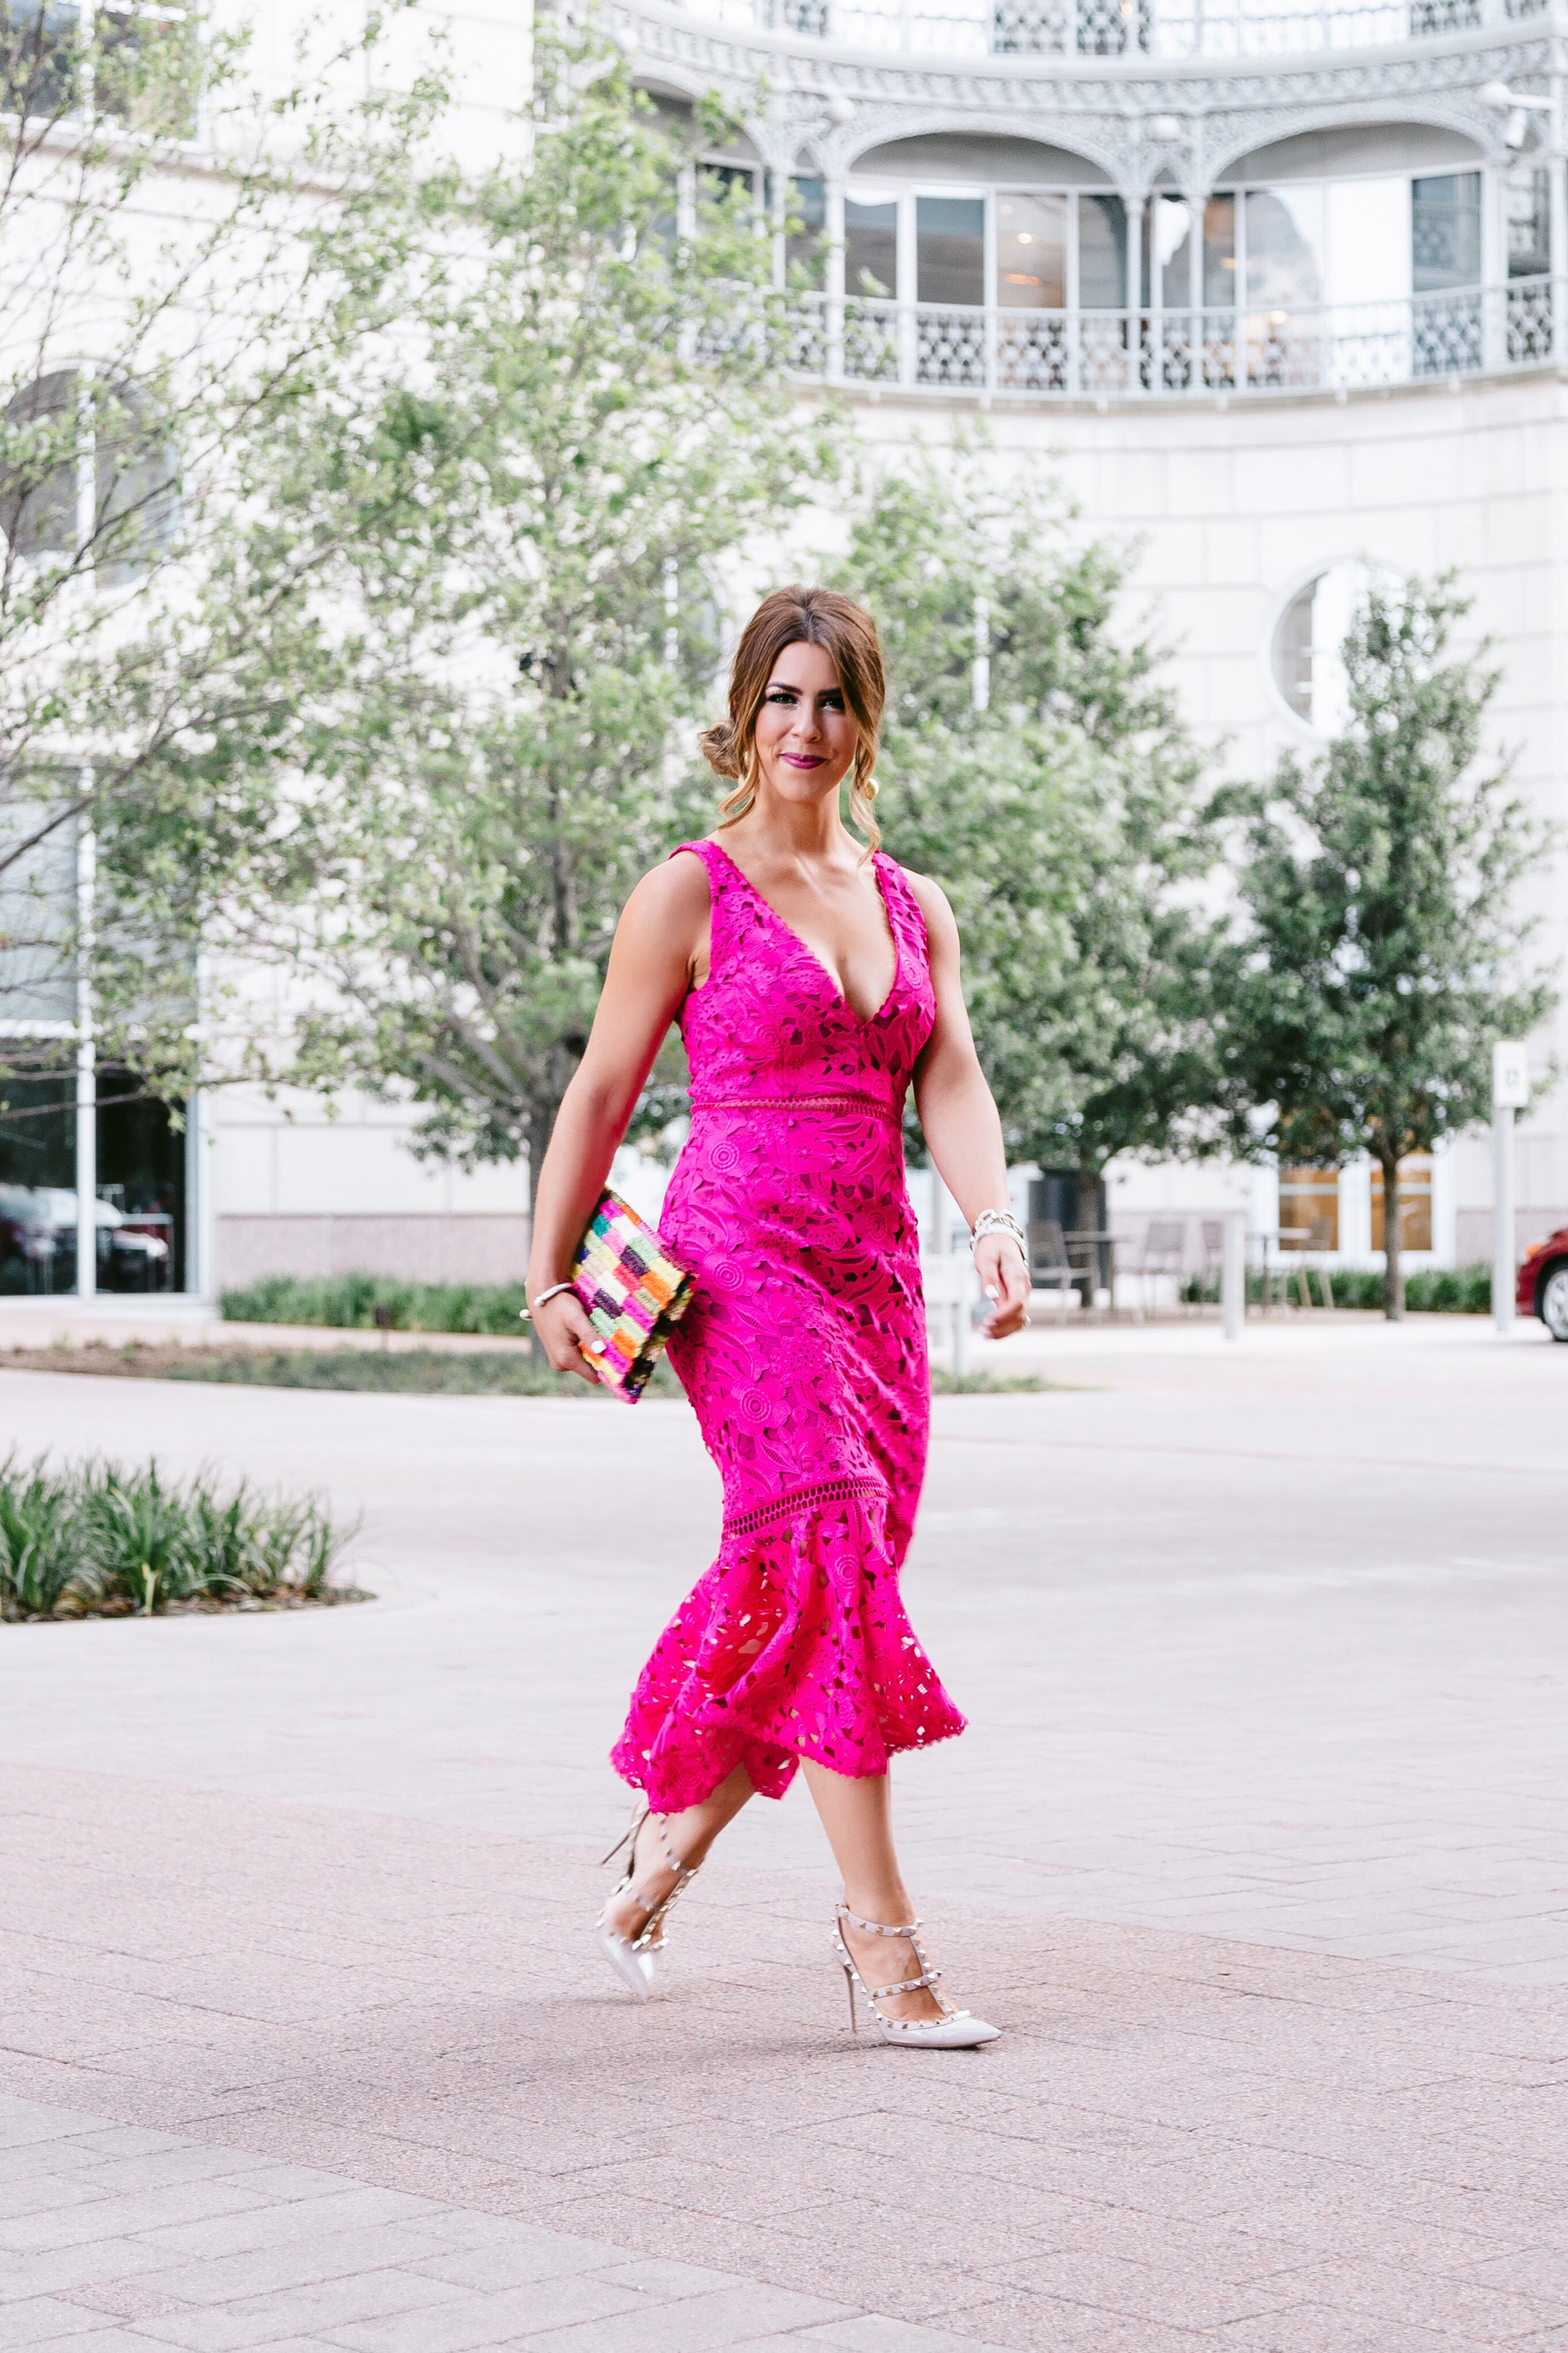 #rsthecon finale party liketoknow.it launch party rewardstyle party rewardstyle blogger rewardstyle fashion week pink peplum dress pink lace dress pink midi dress nicholas dress hot pink dress hot pink lace dress fuchsia dress fiesta dress formal dress what to wear to a wedding colorful clutch valentino rockstud pumps valentino heels hair updo formal updo formal hairstyle wedding hairstyle